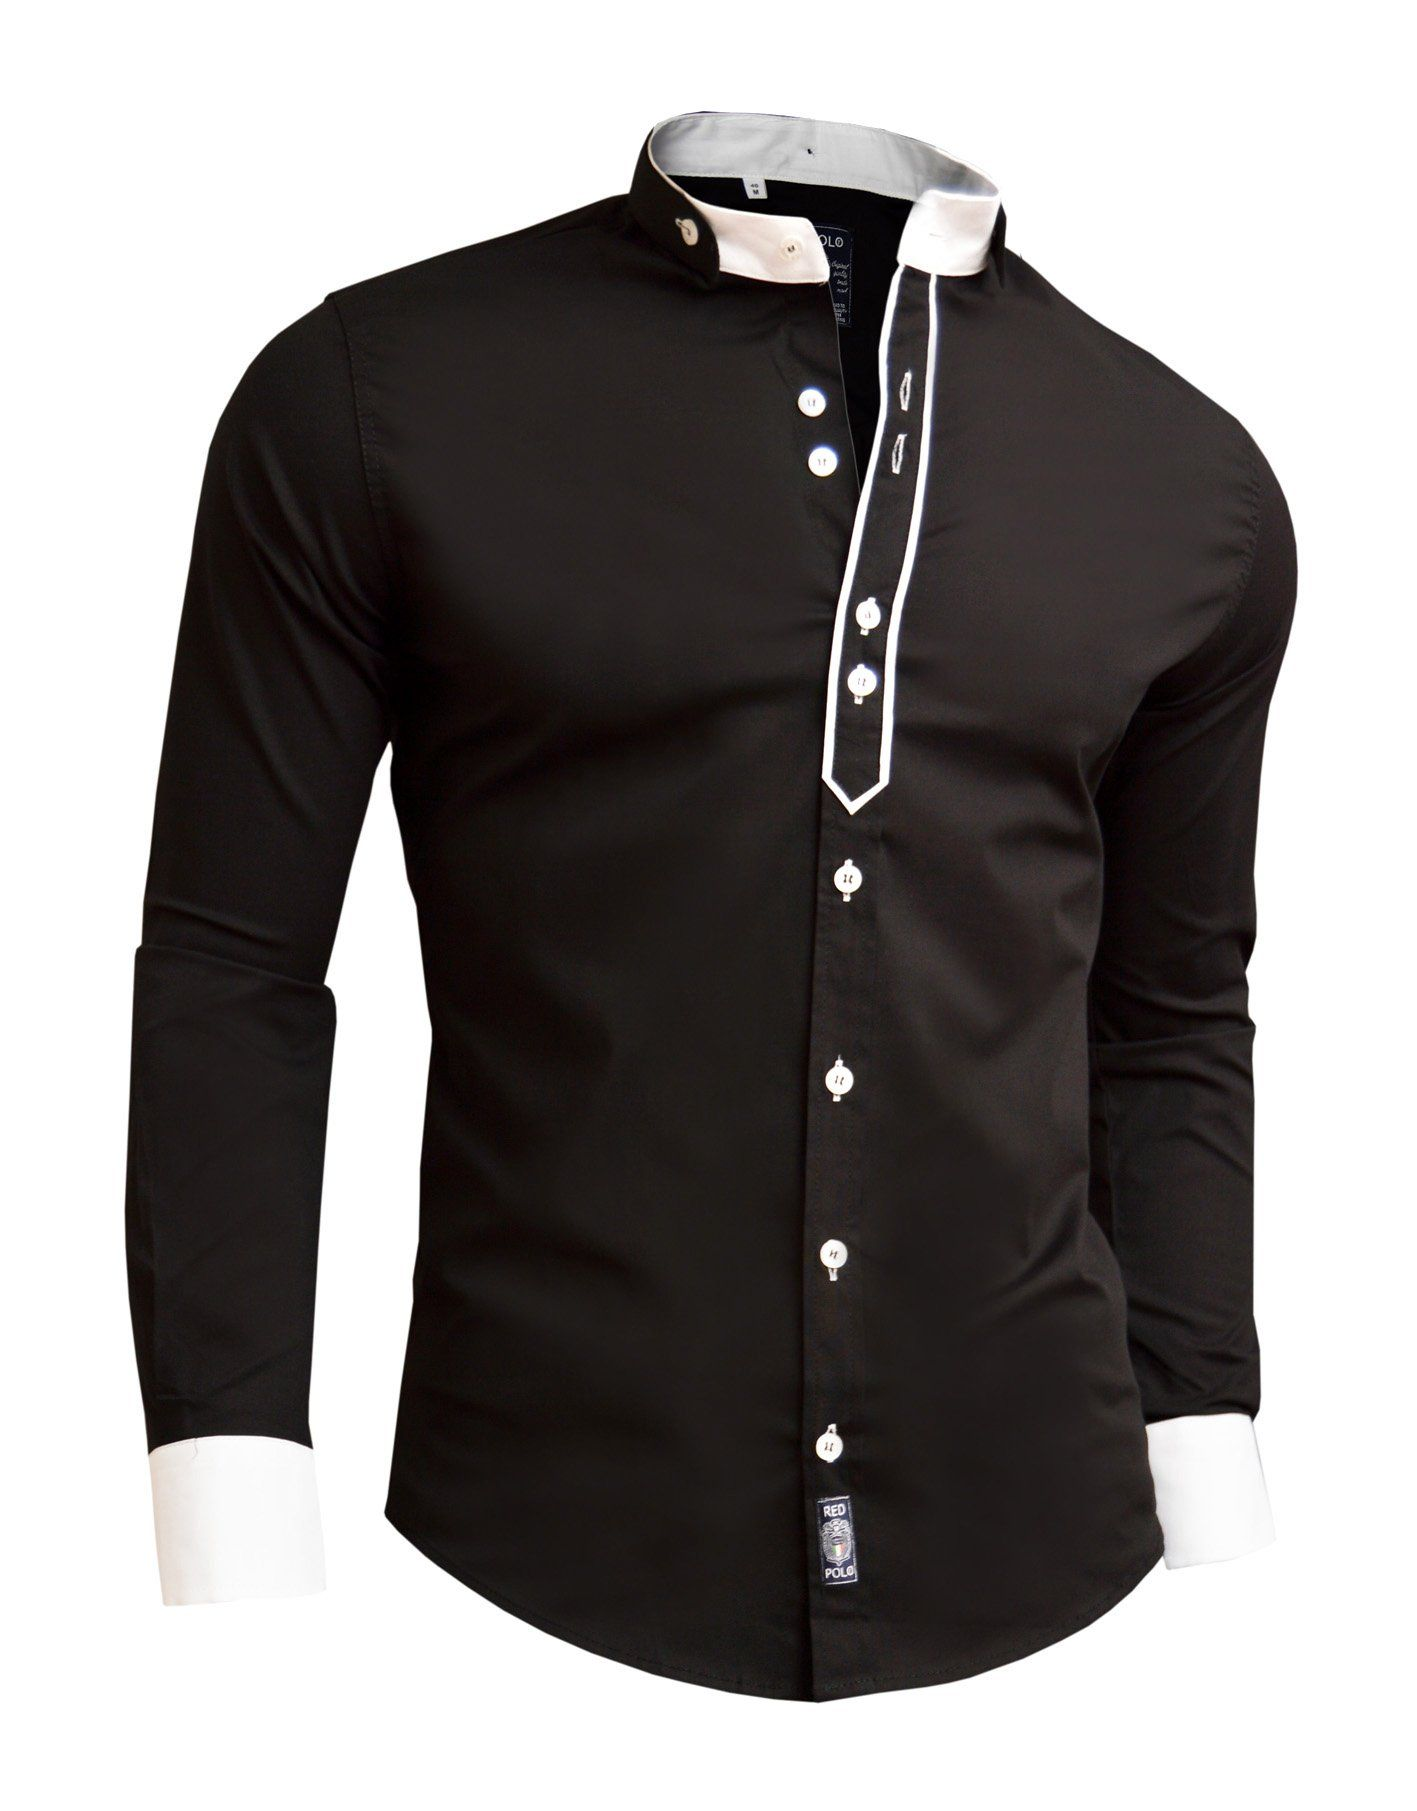 Designer Men Casual Formal Double Cuffs Grandad Band Collar Shirt